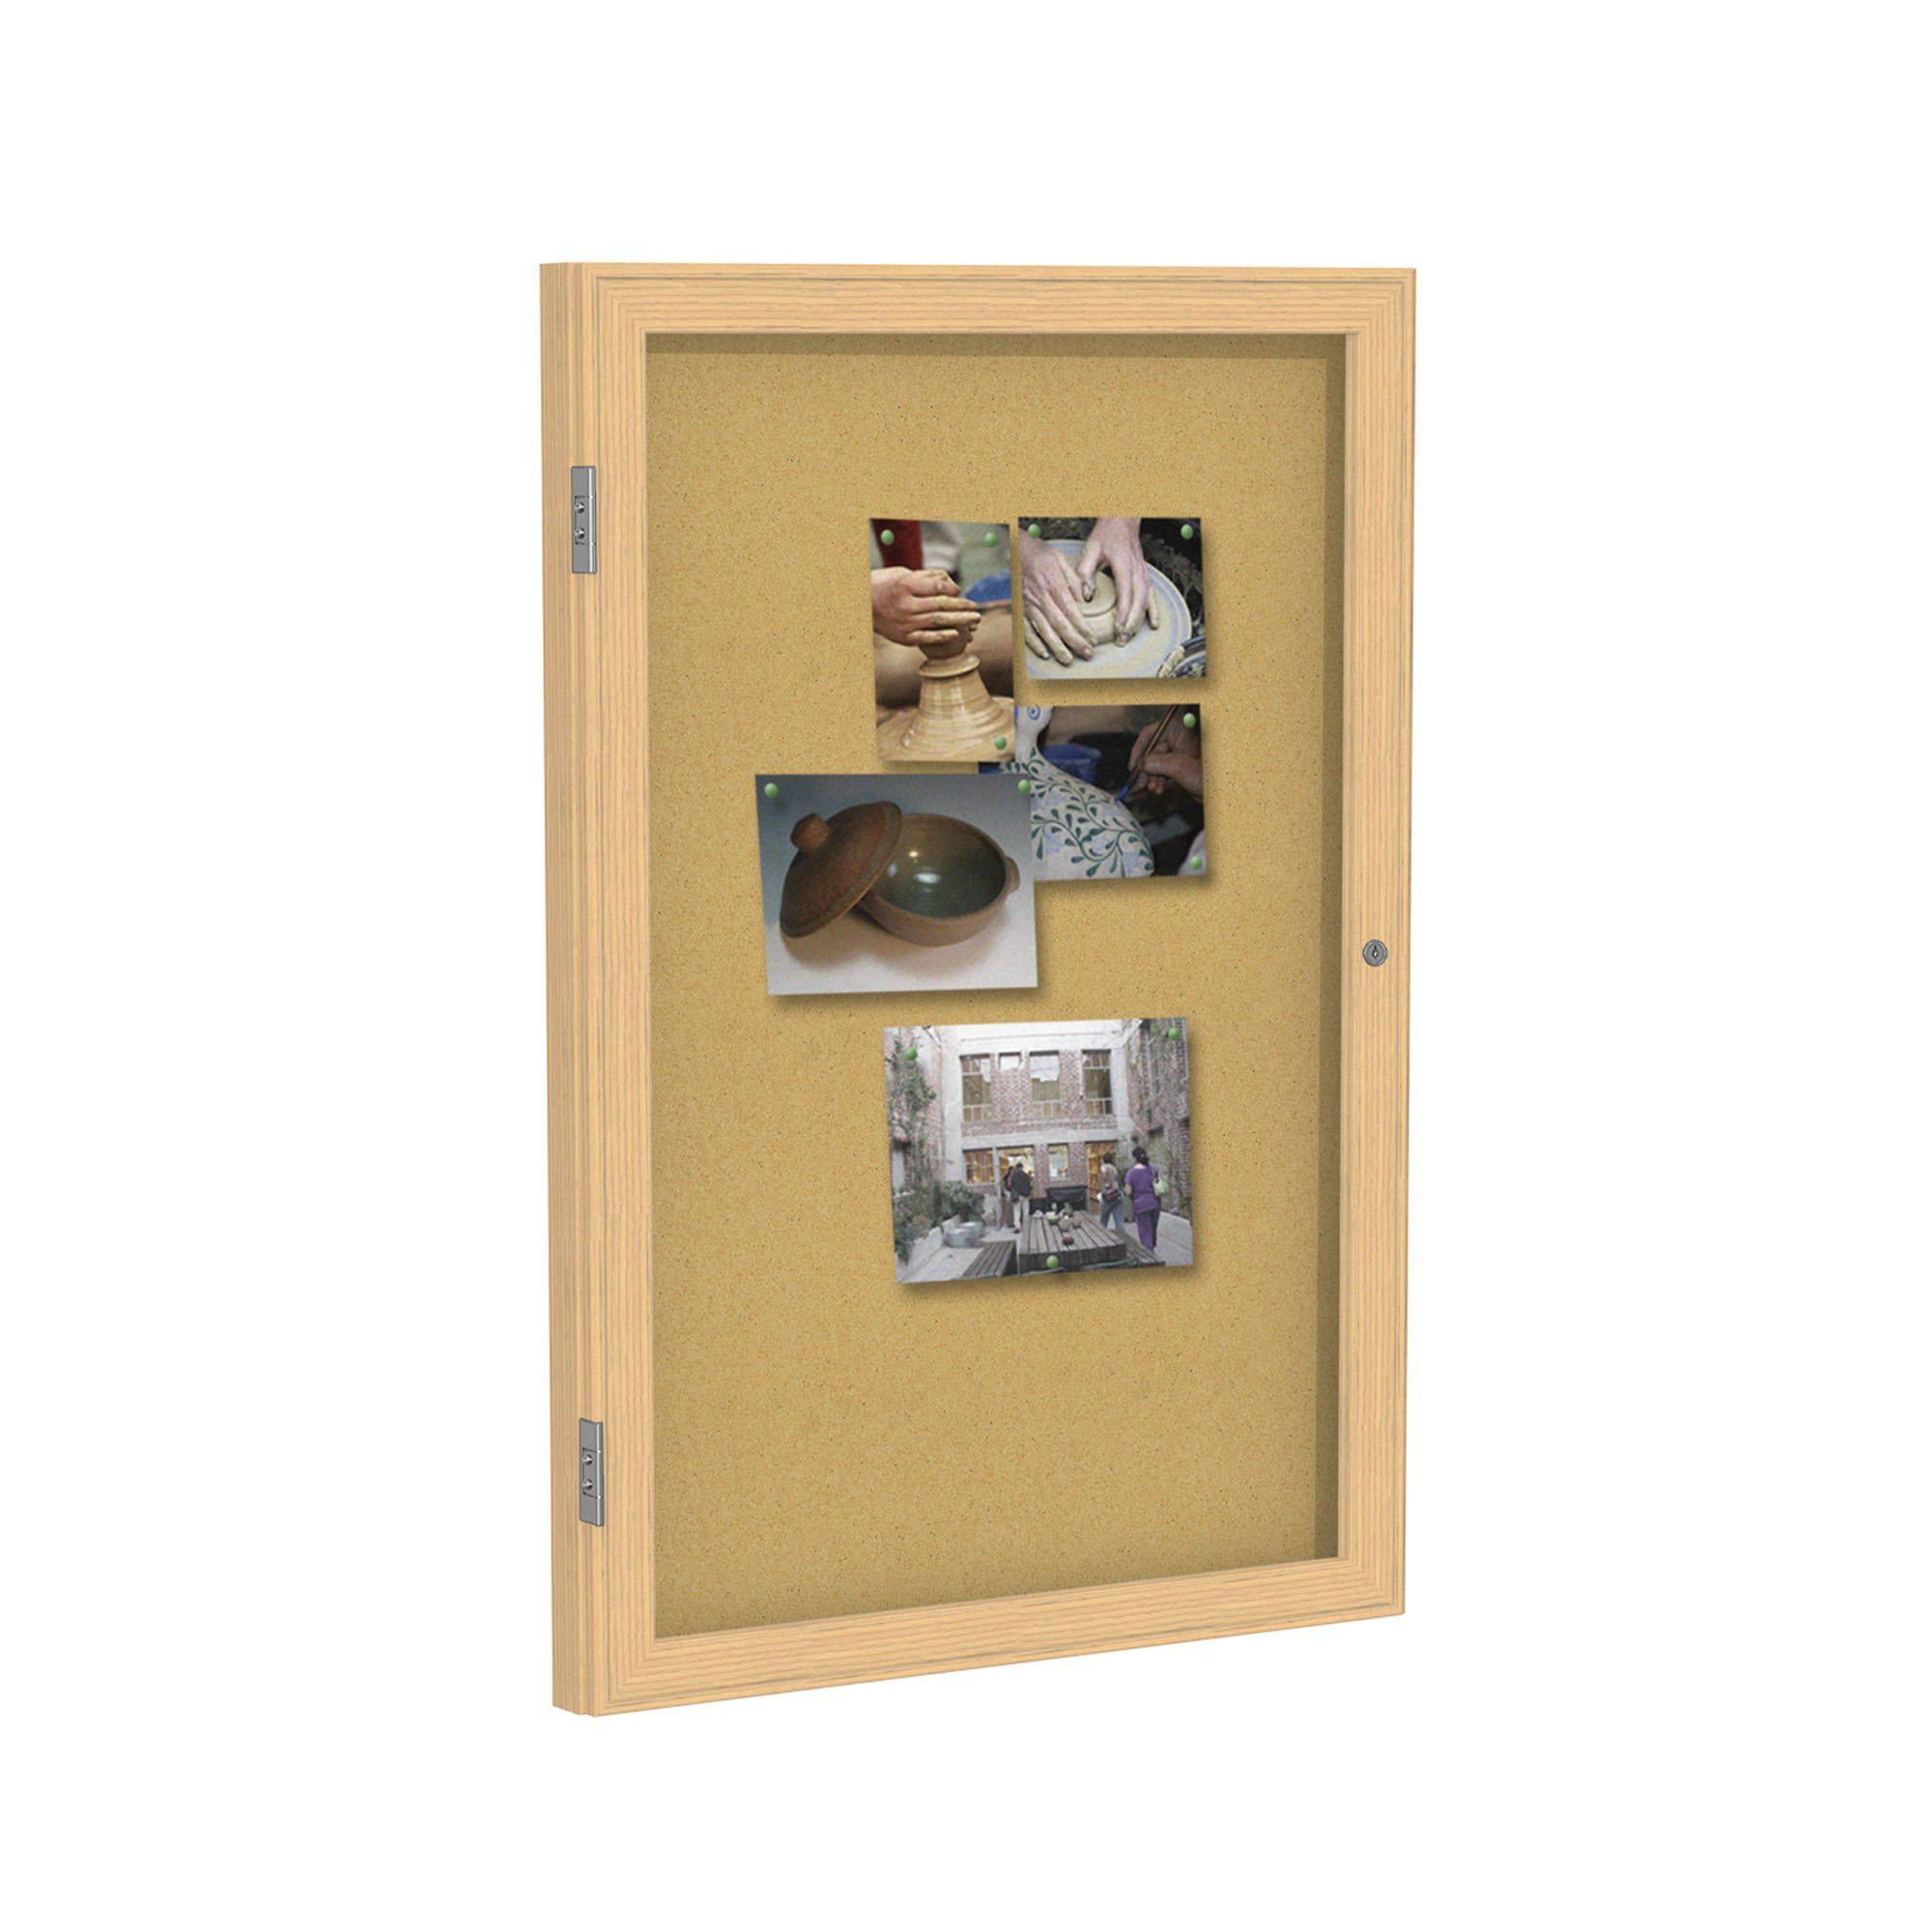 Enclosed Natural Cork Bulletin Board with Oak Wood Frame